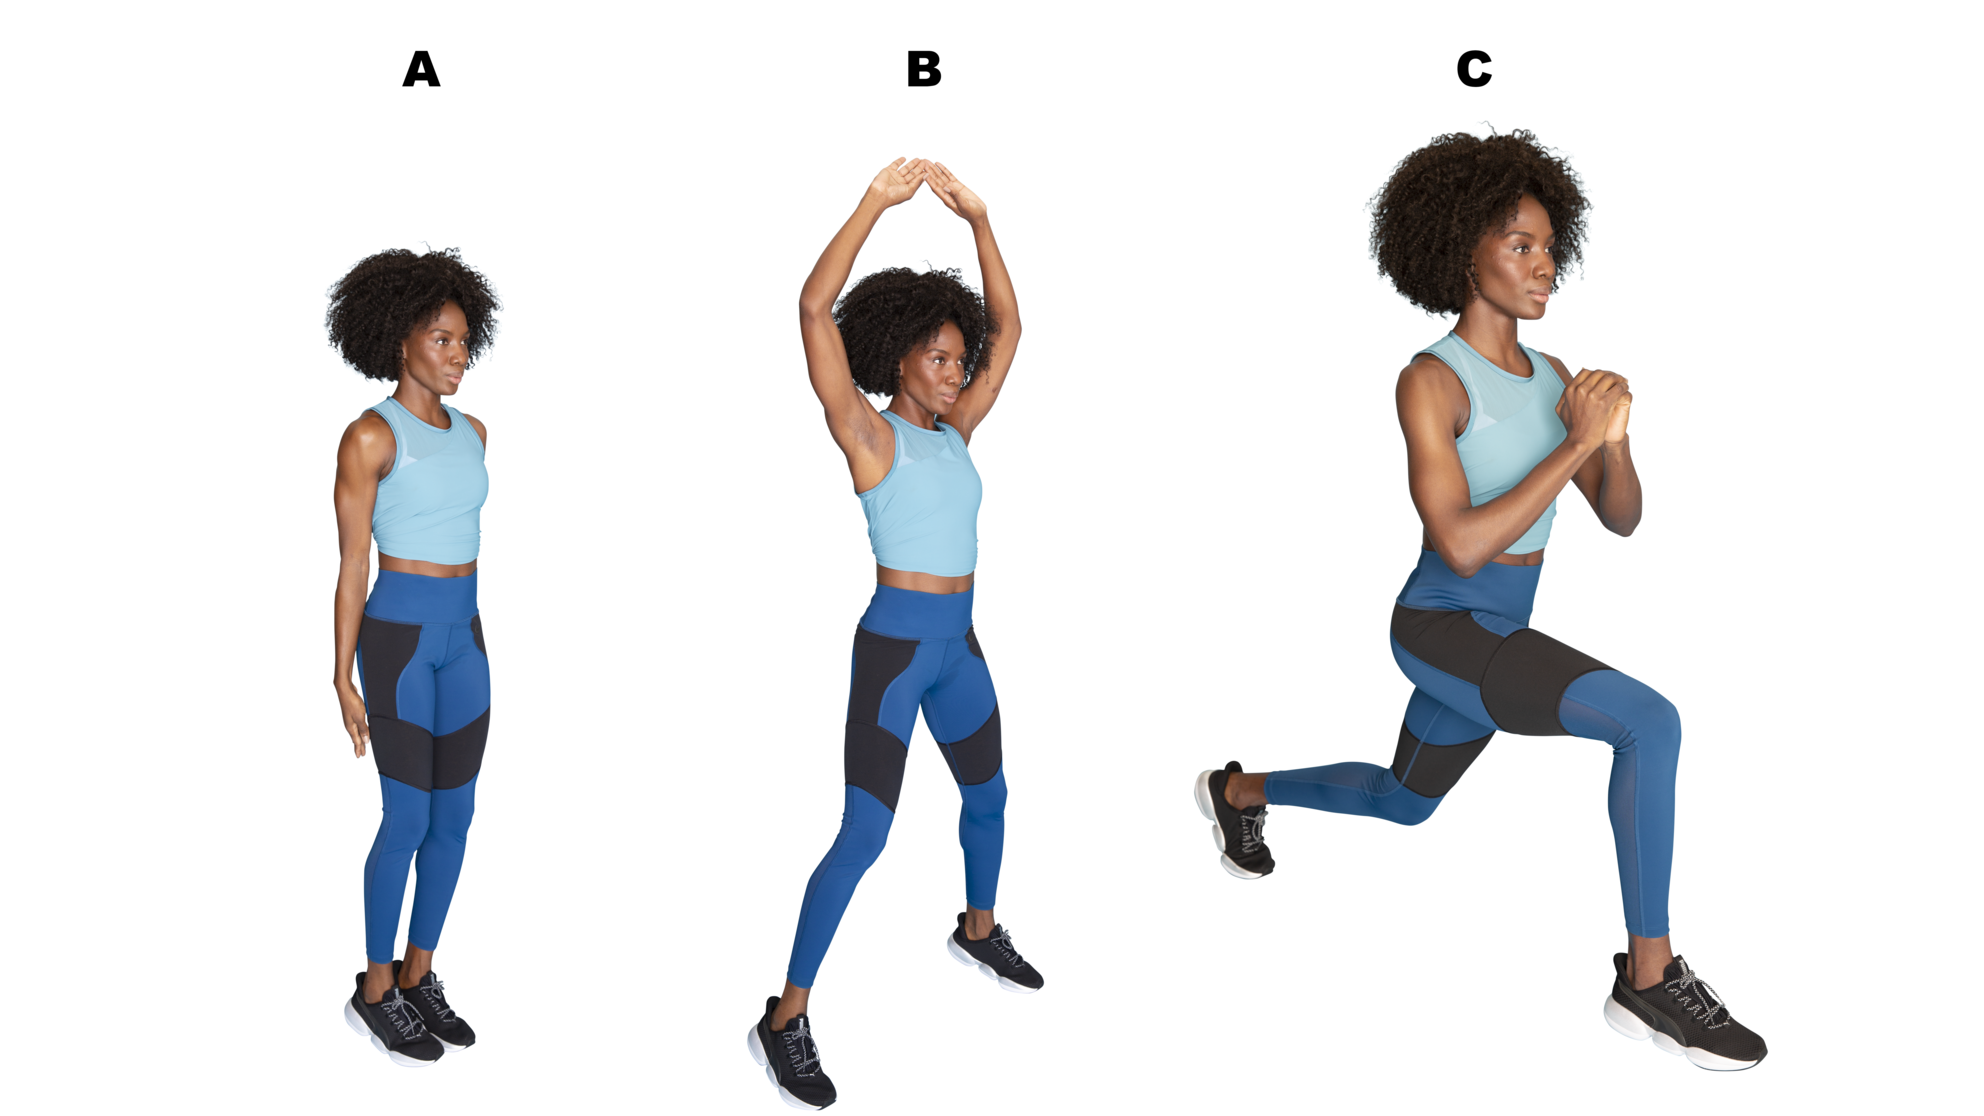 INTERVAL 8 JUMPING JACK TO SWITCH LUNGES